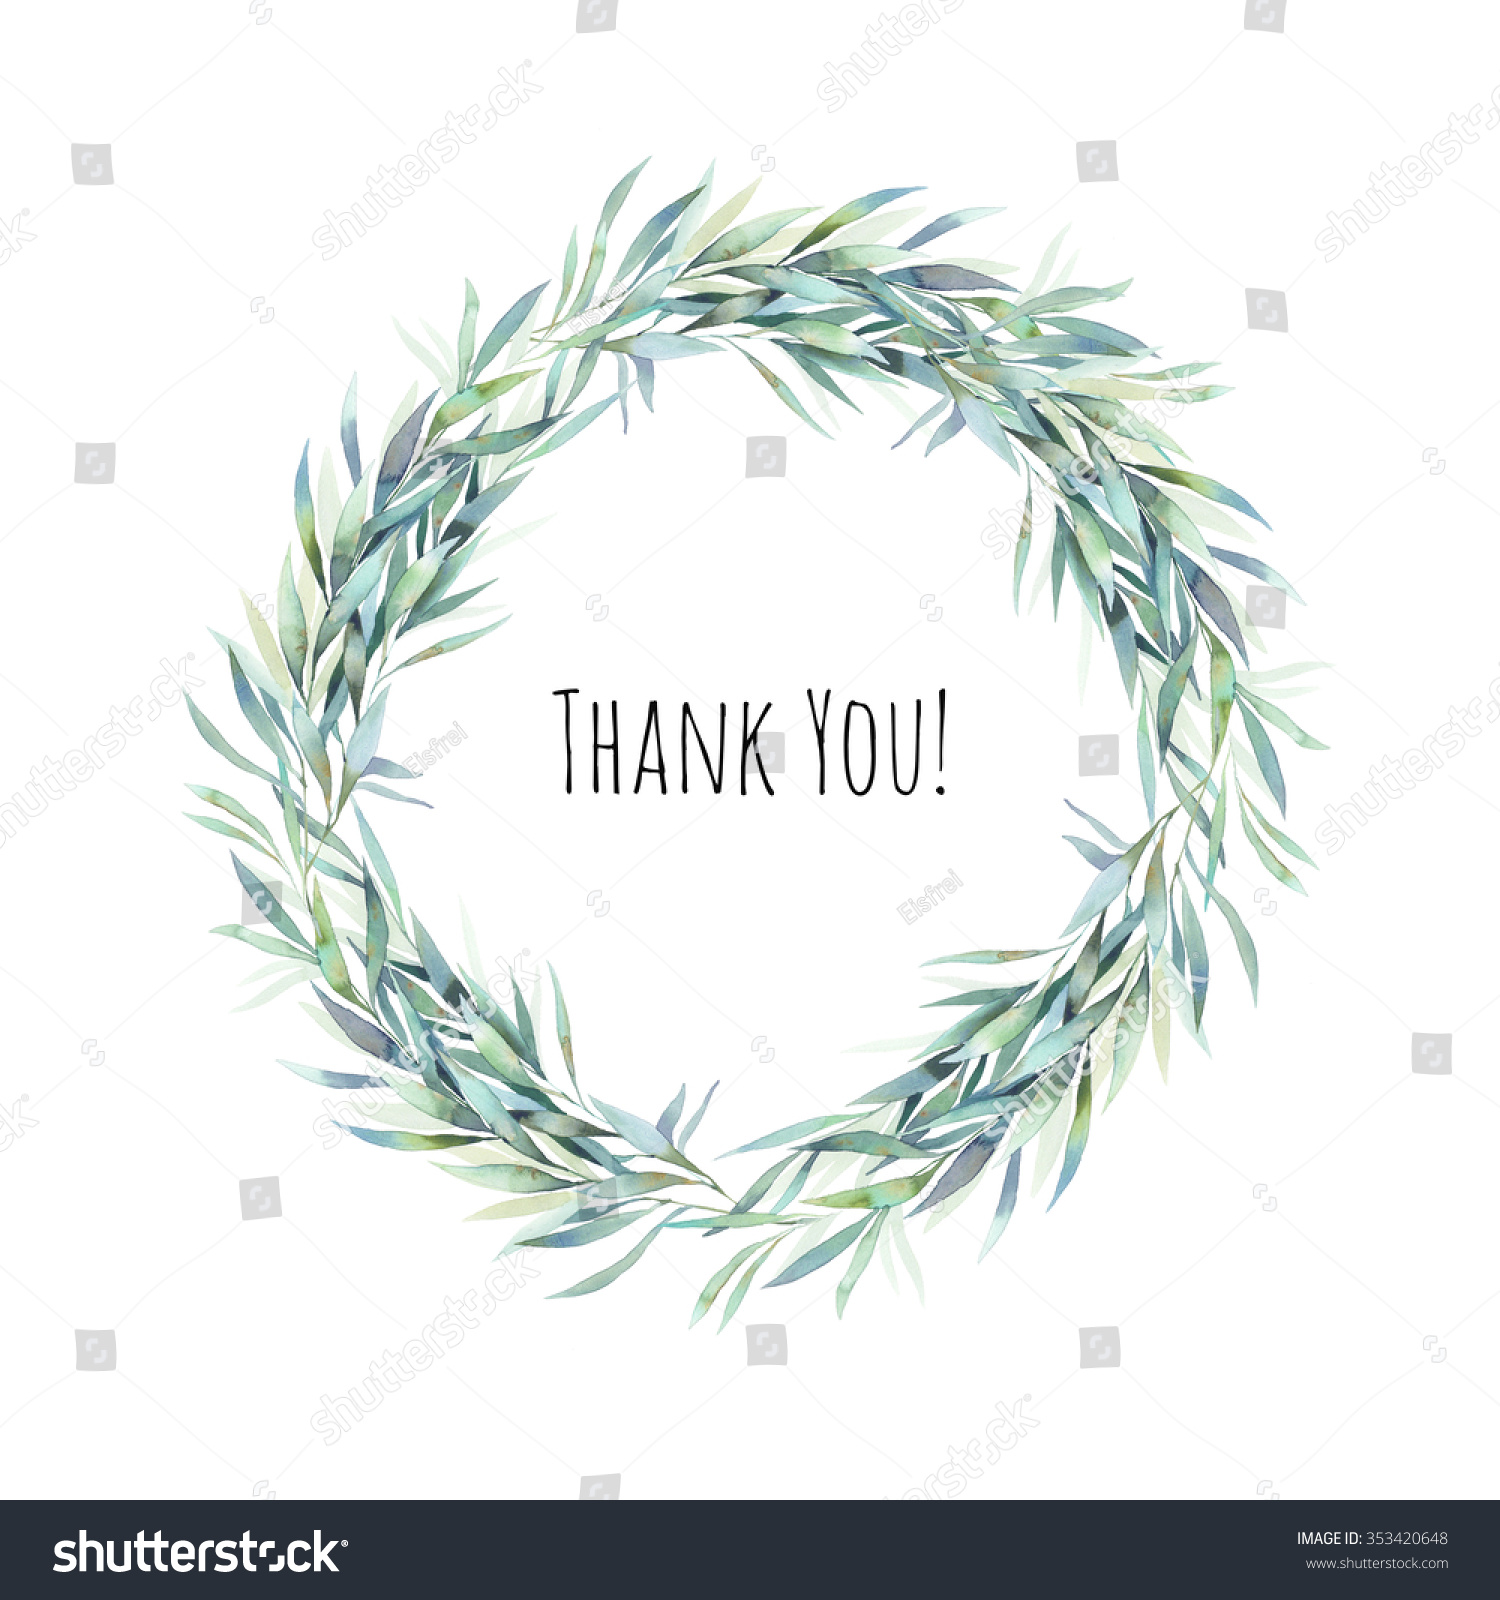 Watercolor Thank you card Hand painted leaves wreath Round label frame isolated on white background Natural design element